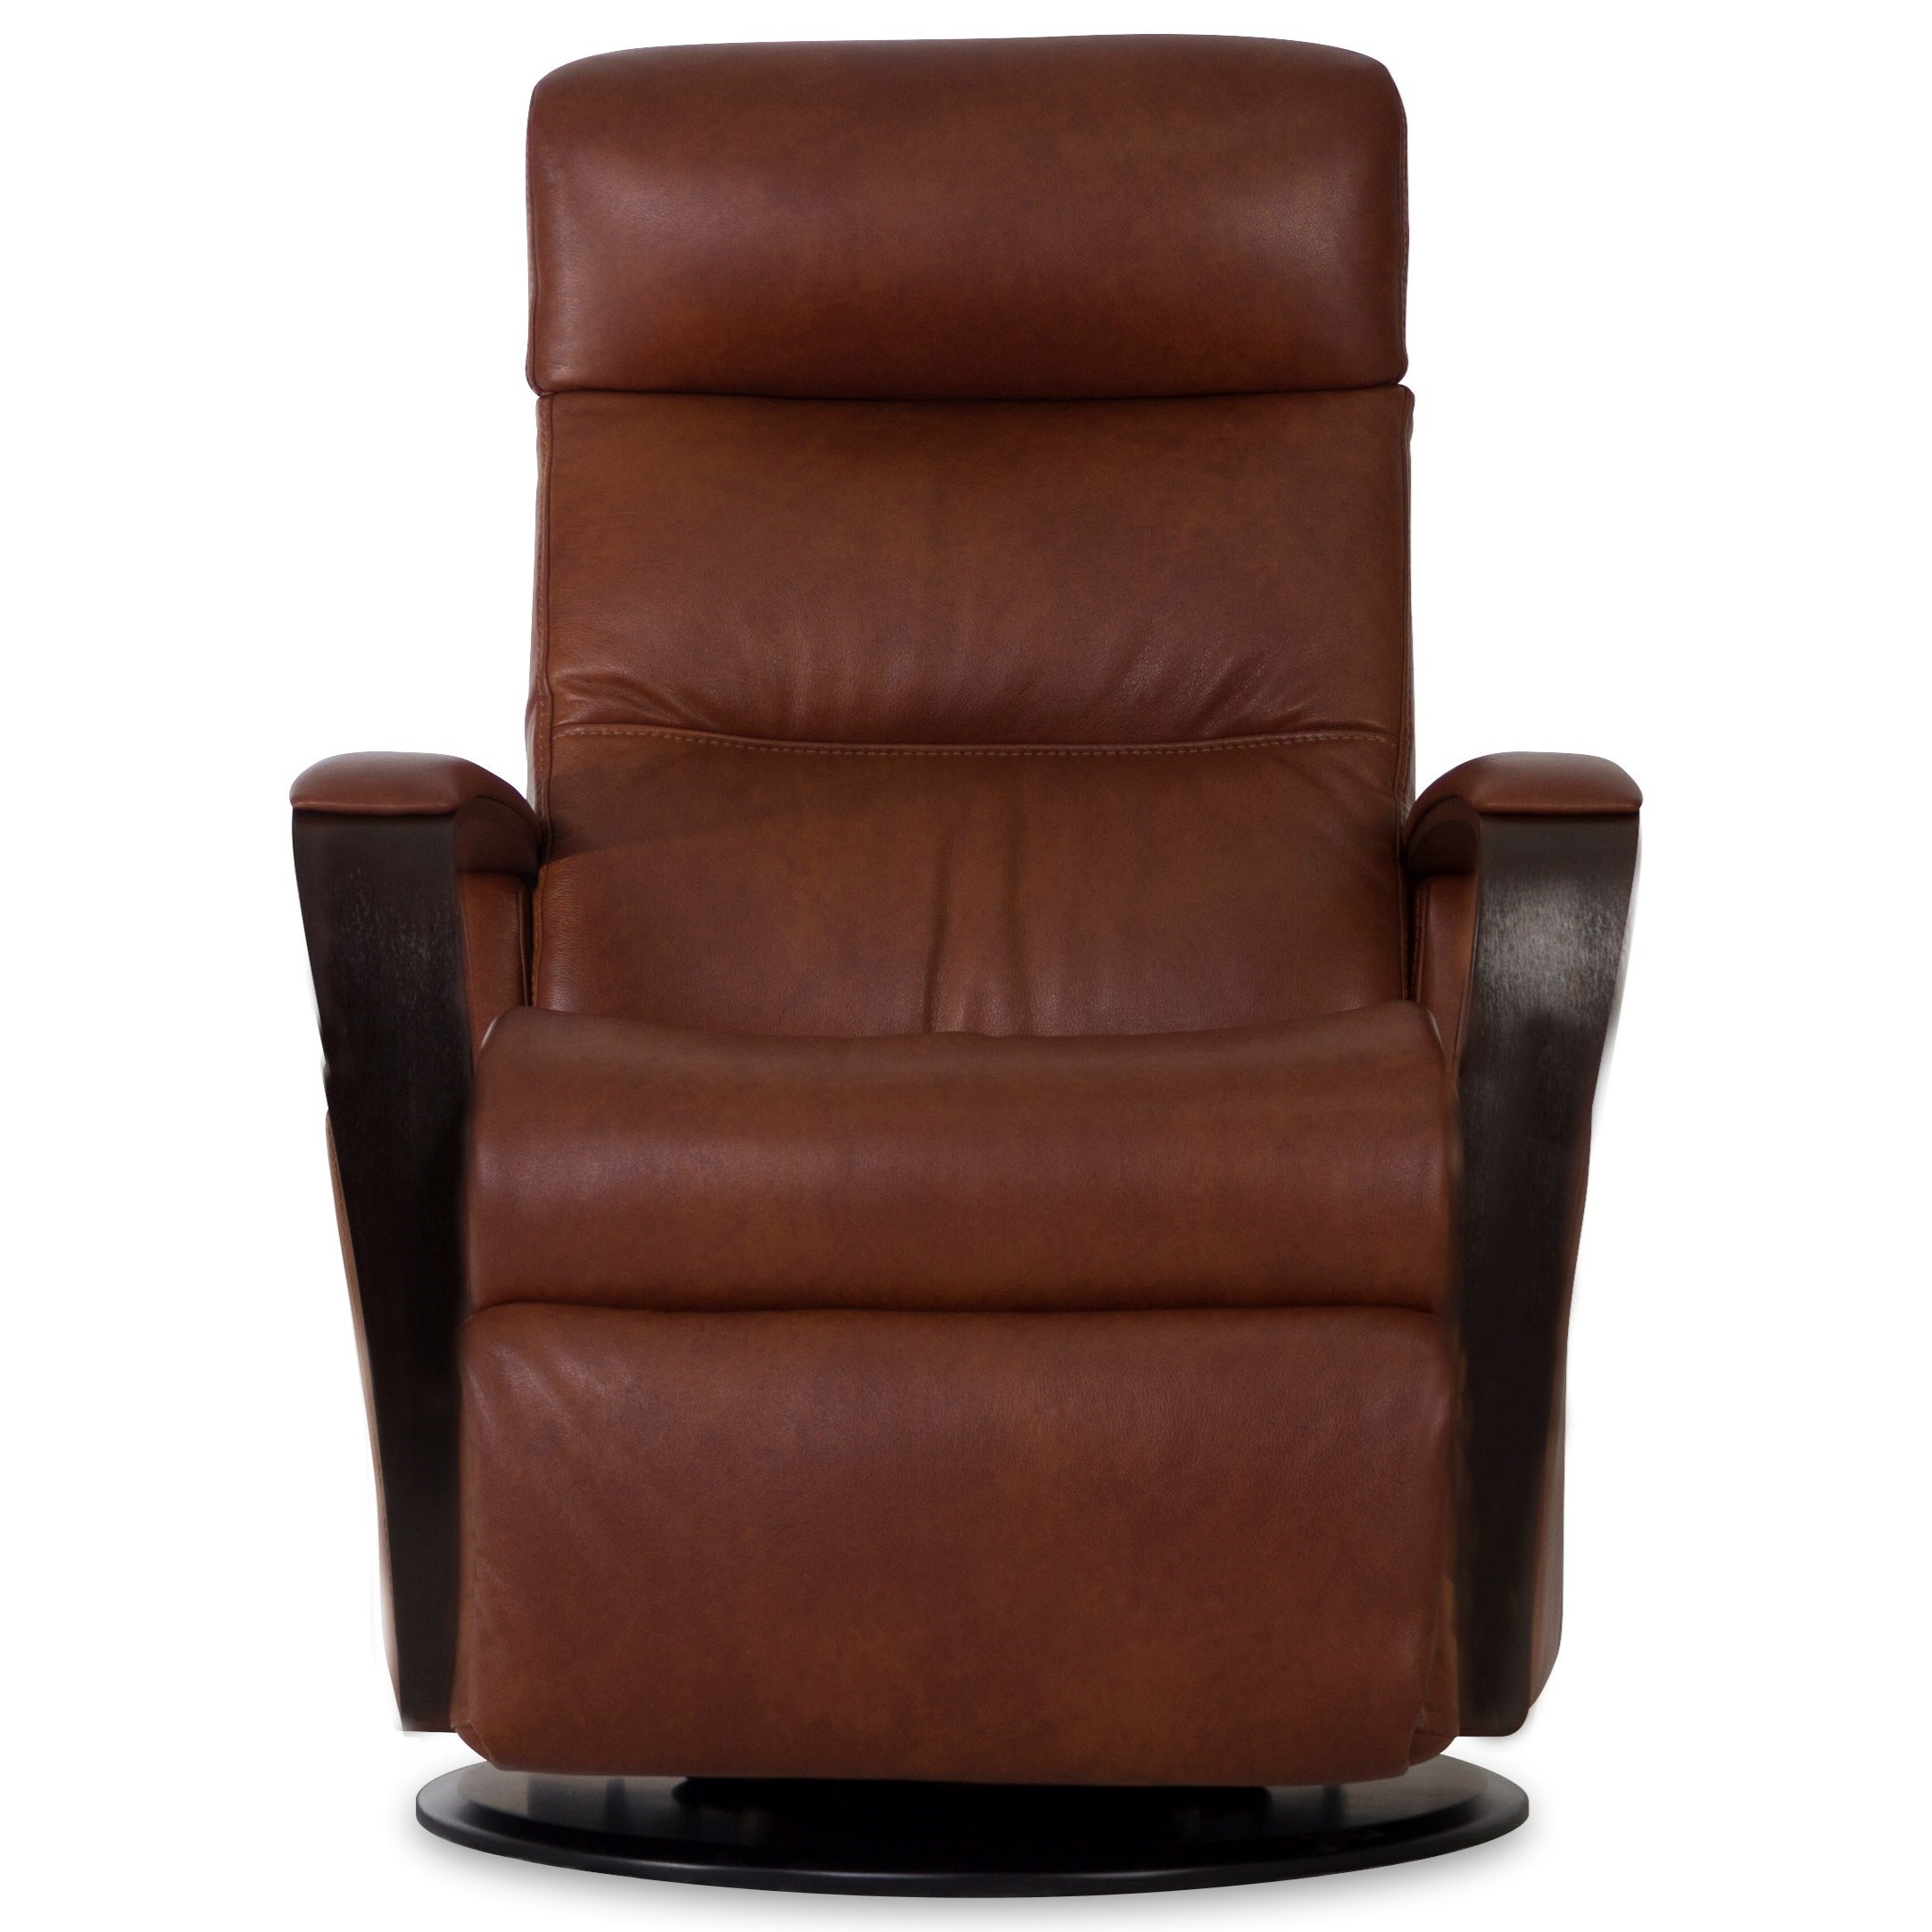 Vendor 508 Recliners Rg365 Modern Peak Recliner Relaxer With Exposed Wood Arms Becker Furniture Three Way Recliners